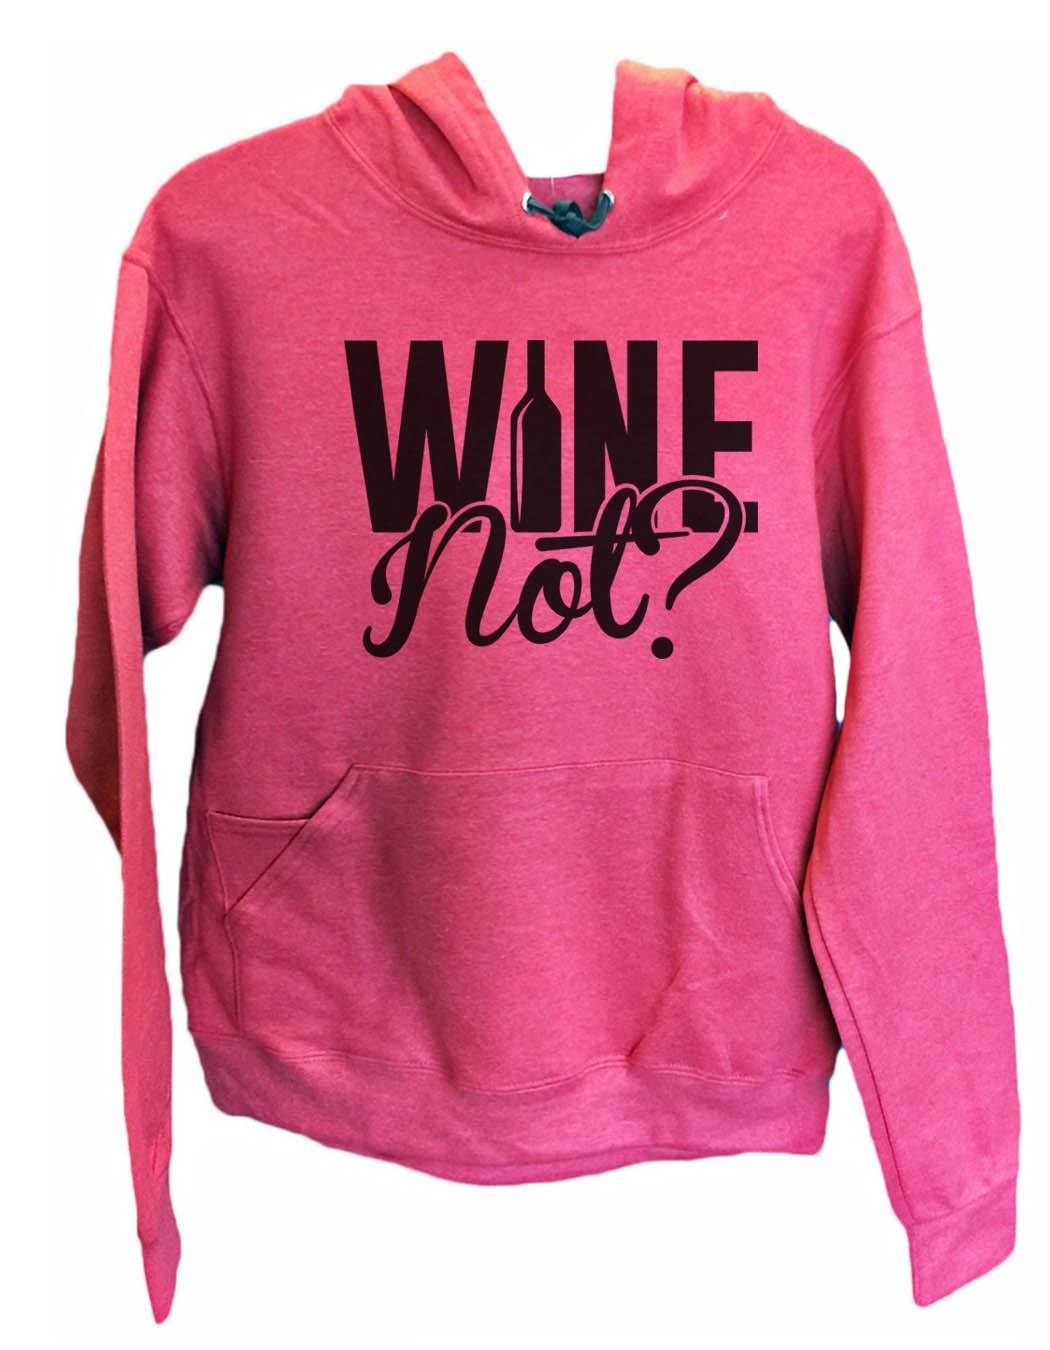 UNISEX HOODIE - Wine Not? - FUNNY MENS AND WOMENS HOODED SWEATSHIRTS - 2161 Funny Shirt